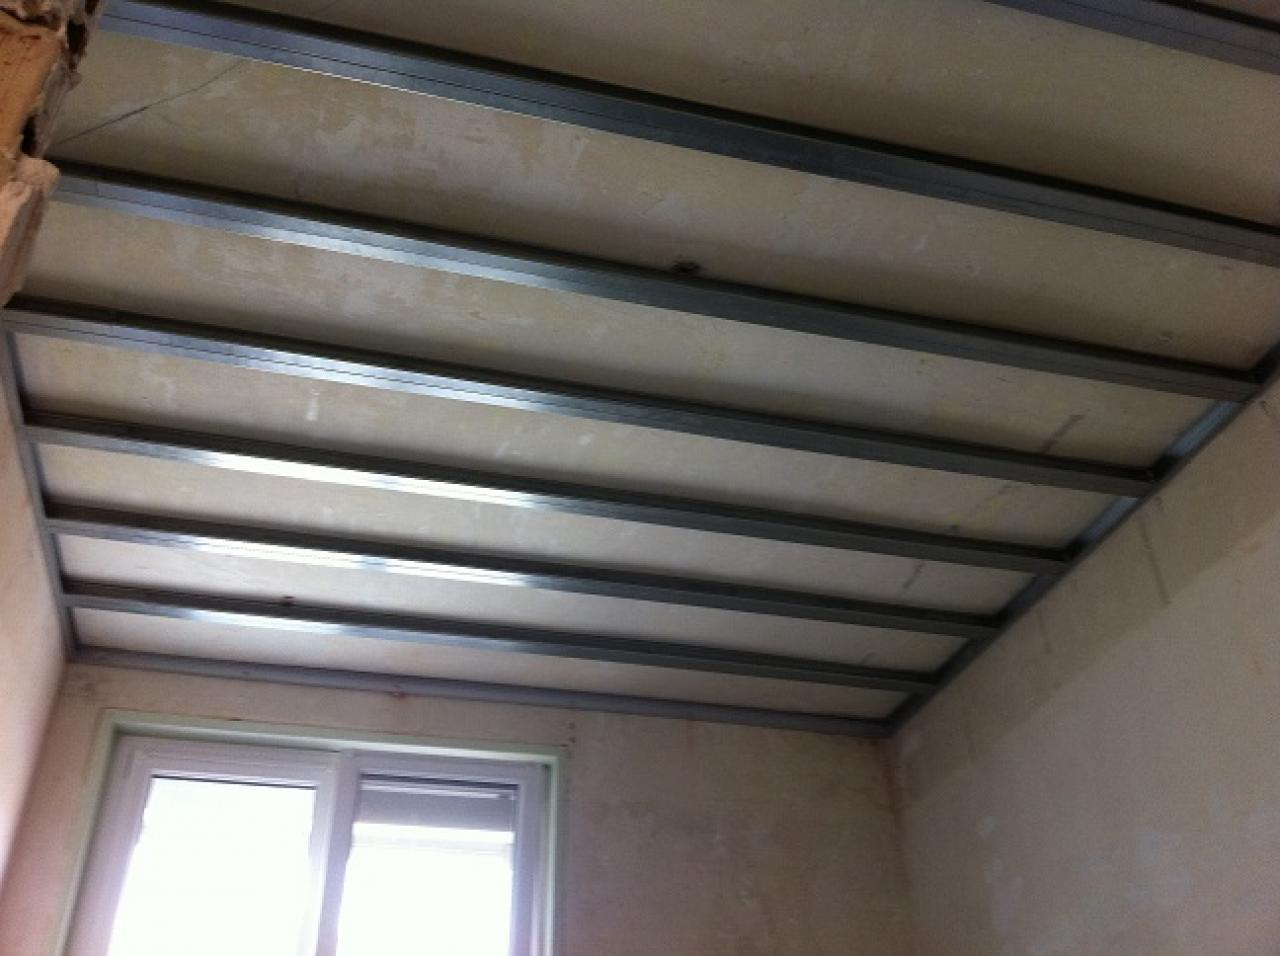 Types de rails et montants pour plafond autoporteur placo for Pose de faux plafond en ba13